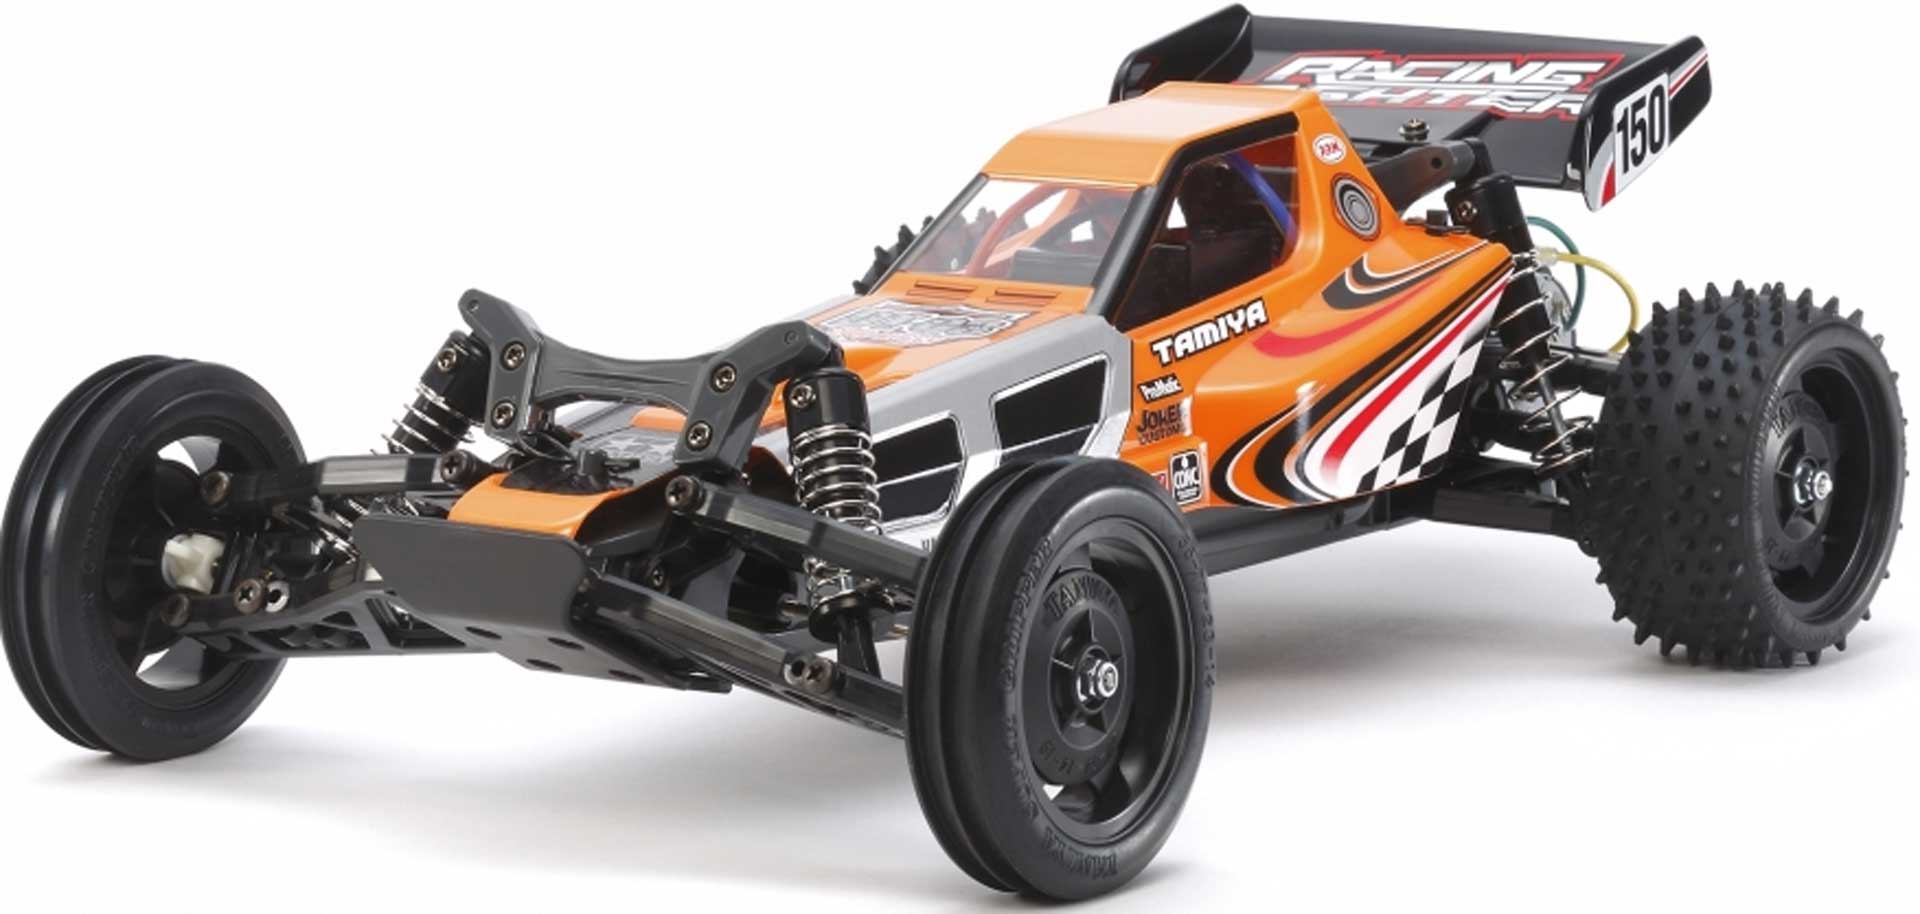 TAMIYA X-SA Racing Fighter (DT-03) 1/10 2WD EP ready built and painted